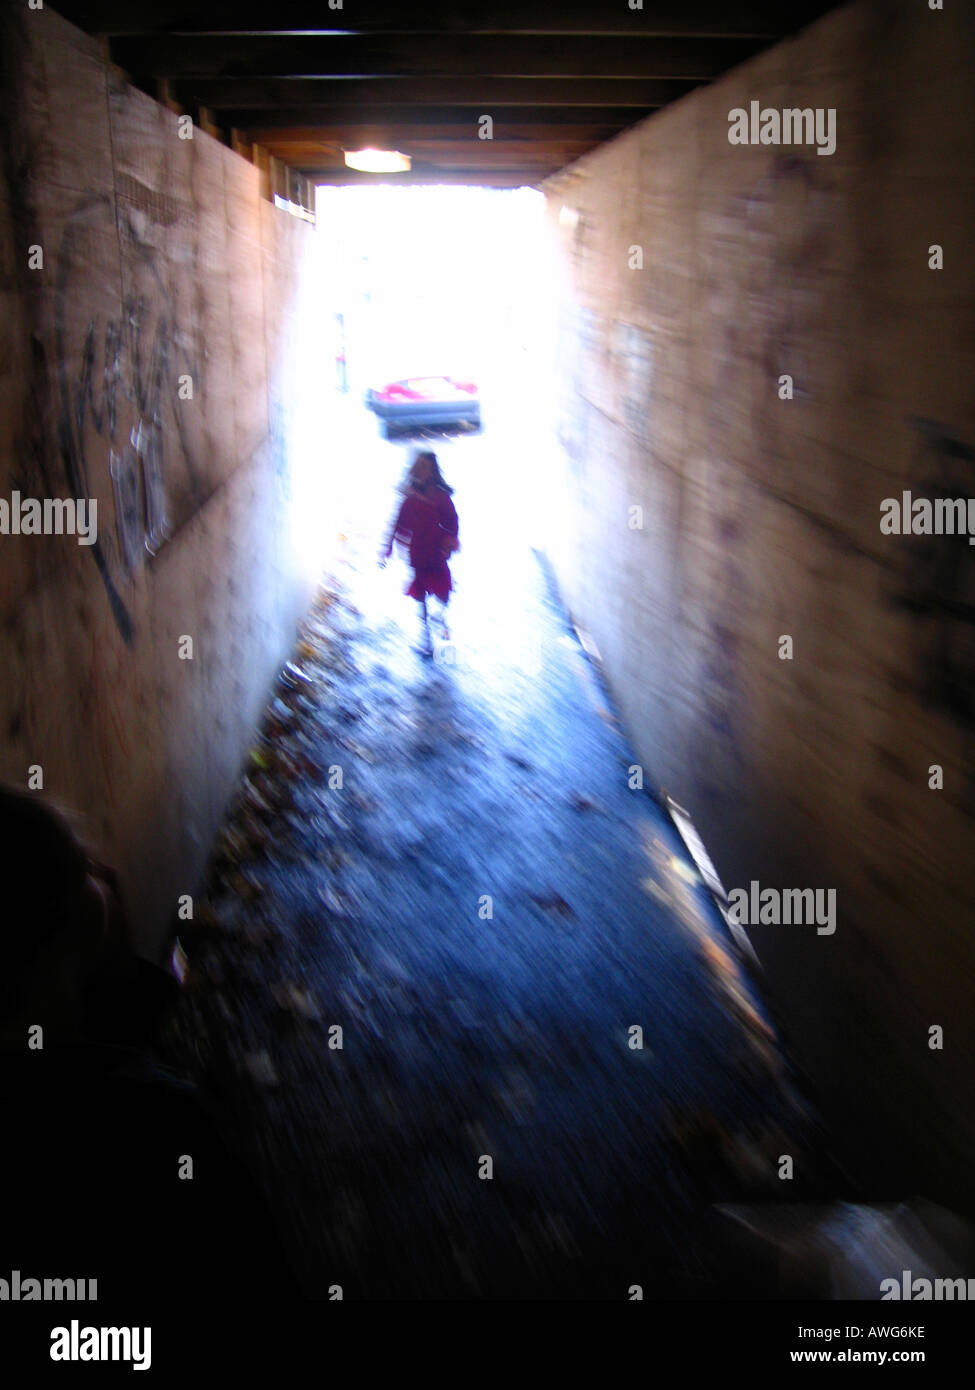 Young girl emerging from dark enclosed walkway - Stock Image